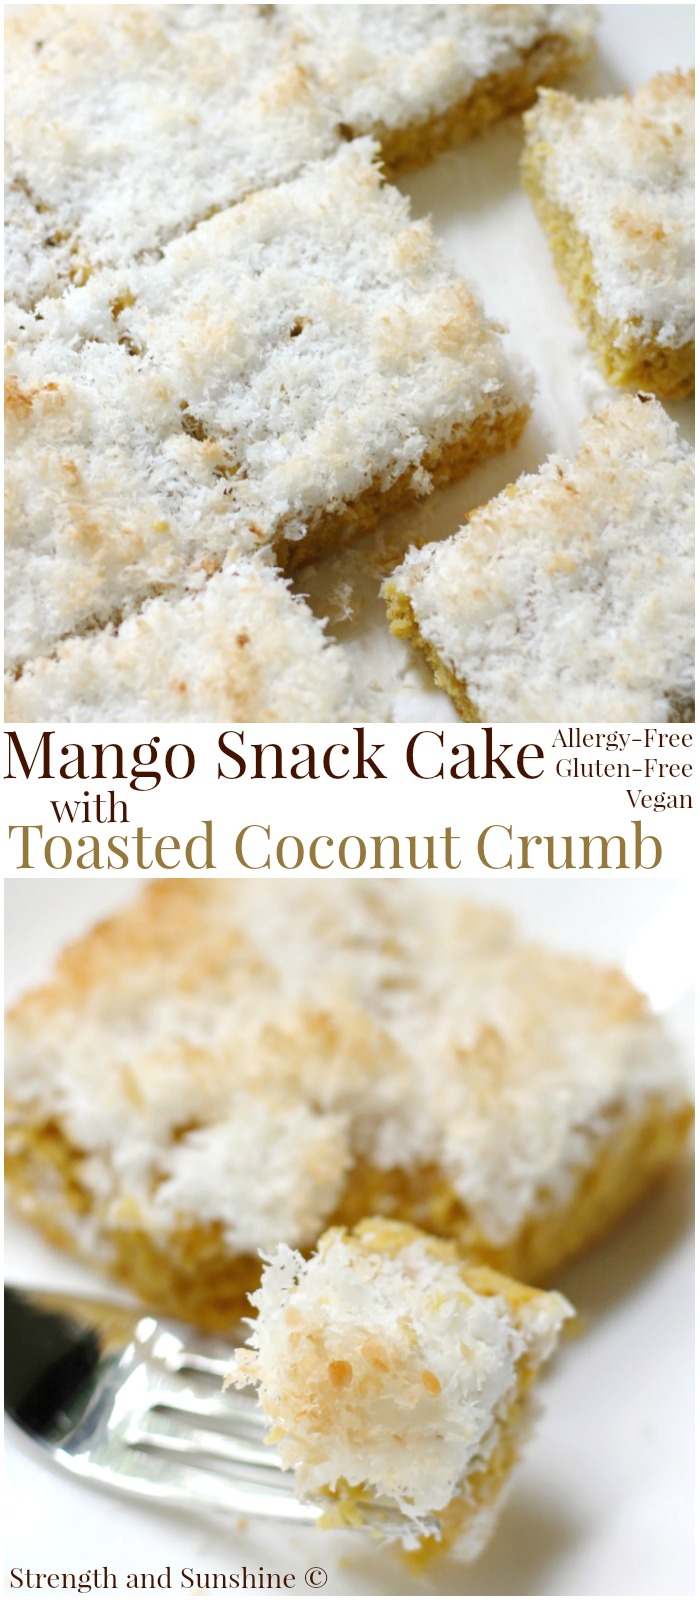 Mango Snack Cake with Toasted Coconut Crumb (Gluten-Free, Vegan) | Strength and Sunshine @RebeccaGF666 A sweet and toasty snacking cake for breakfast, brunch, or dessert! This Mango Snack Cake with Toasted Coconut Crumb recipe is whole grain, gluten-free, vegan, and top 8 allergy-free! The fun tropical flavors of mango and coconut result in a delicious baked tropical treat!